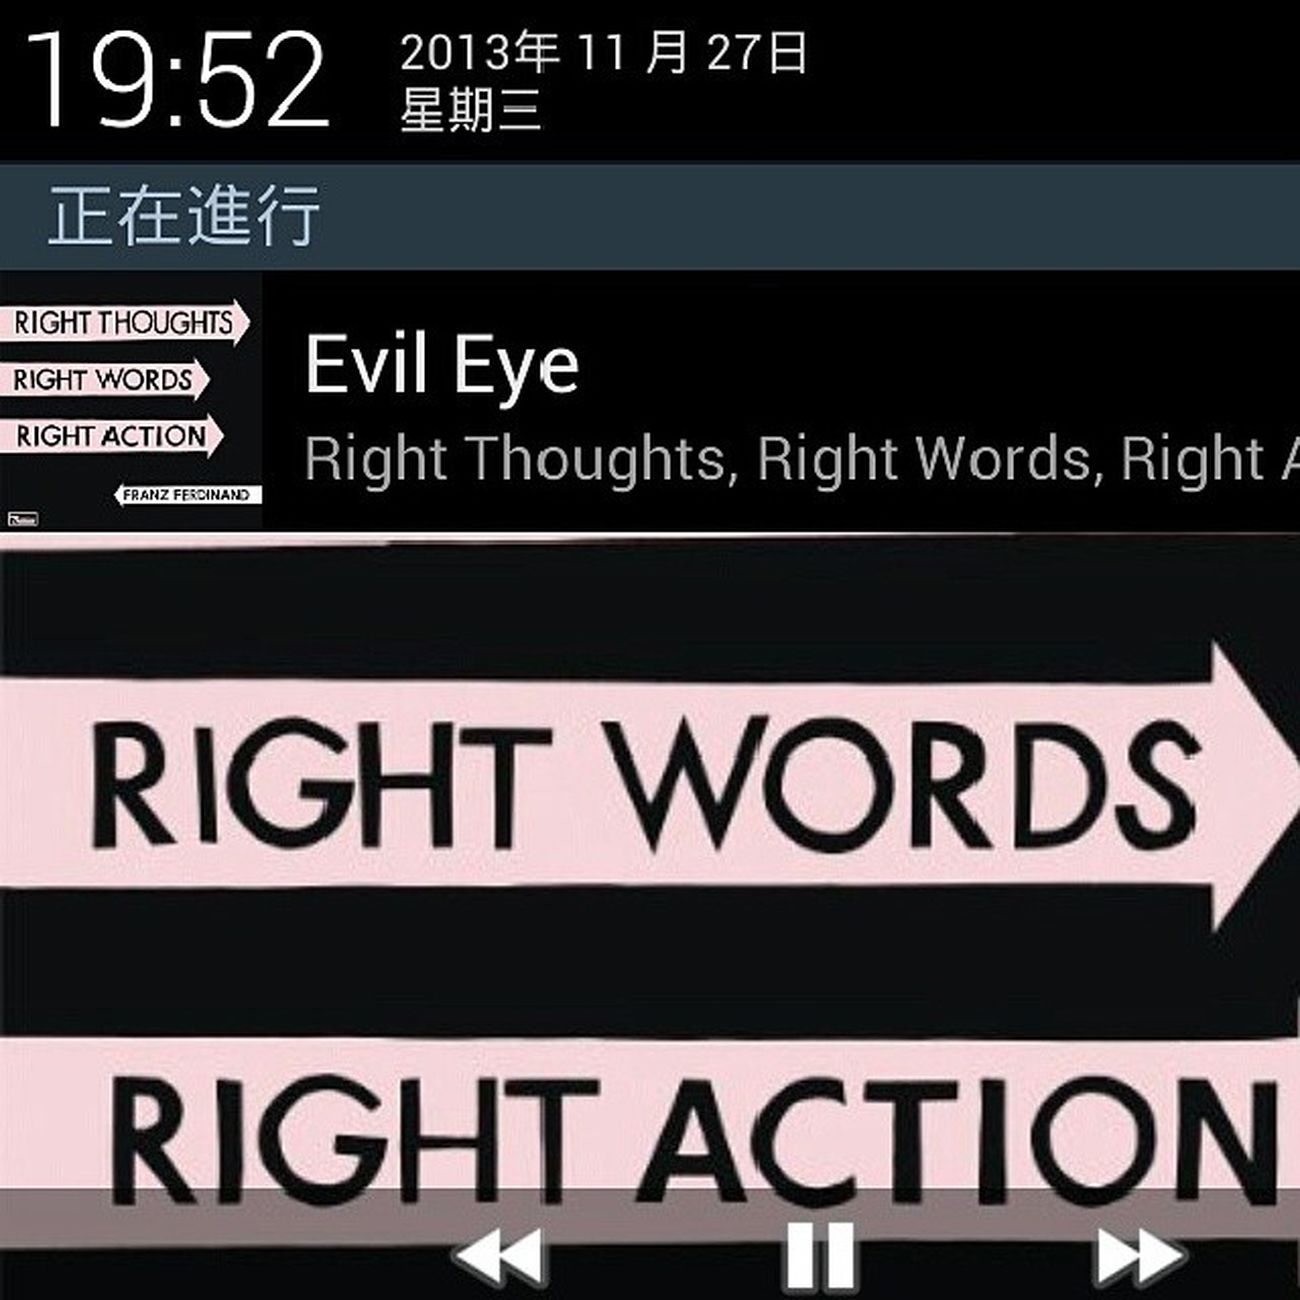 Right Thoughs, Right Words, Right Action Franz Ferdinand Oldnewsissoexciting